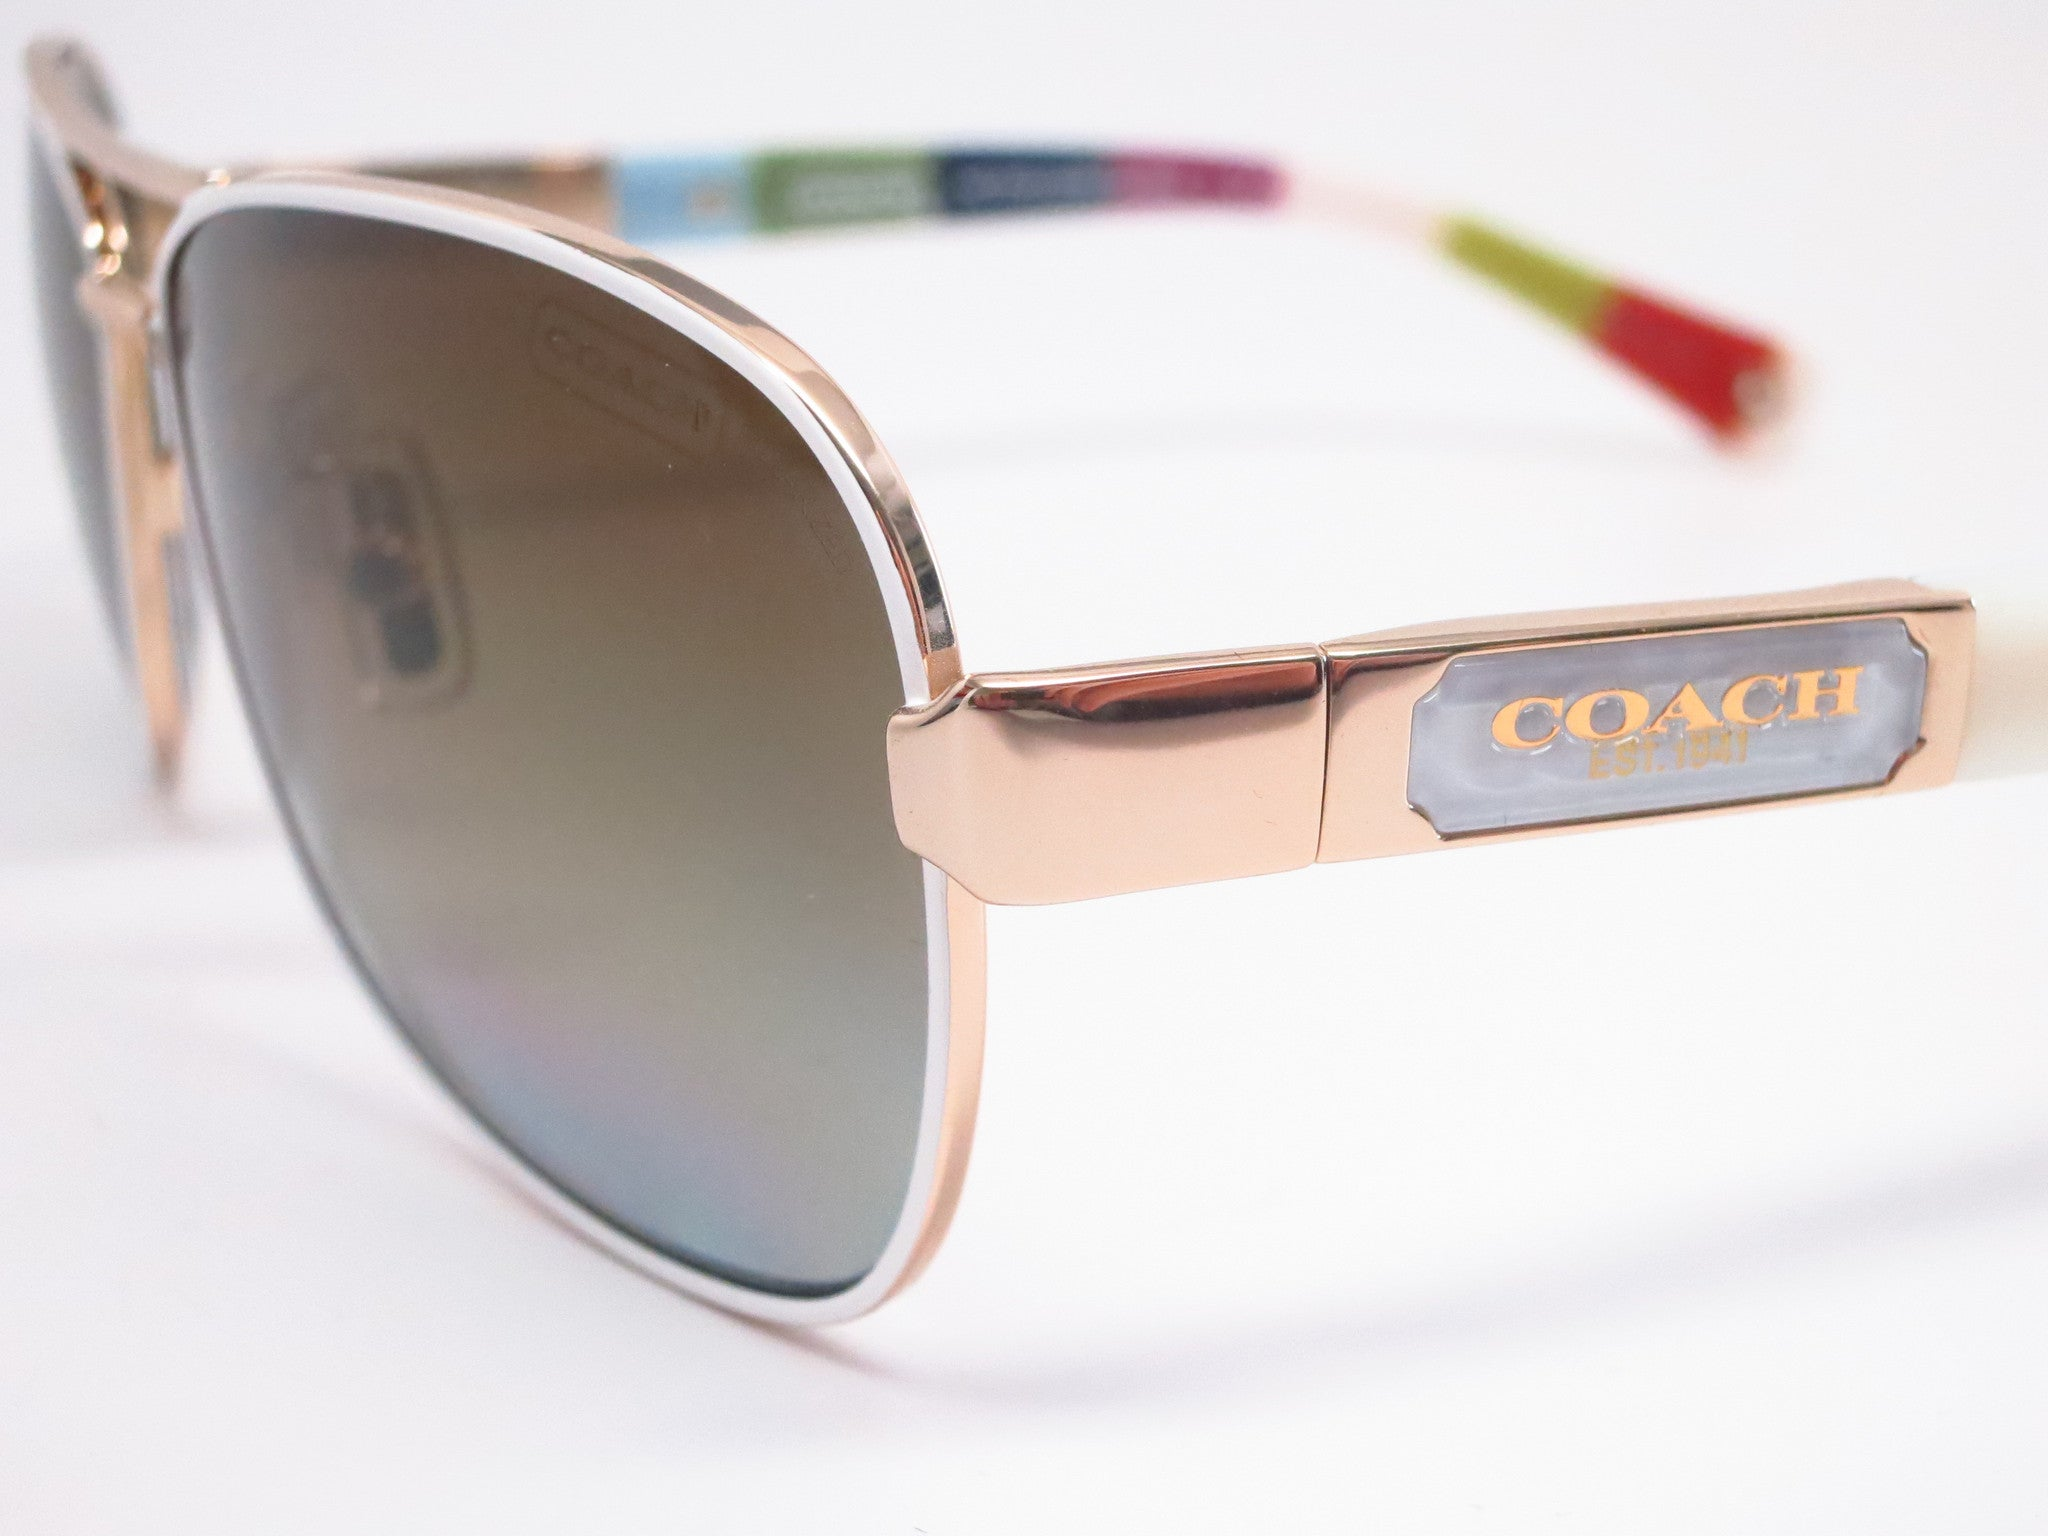 e0ff1f69620a4 ... sweden coach hc 7012 caroline 9168 t5 gold white legacy stripe  polarized sunglasses eye 92b3b 9a47e